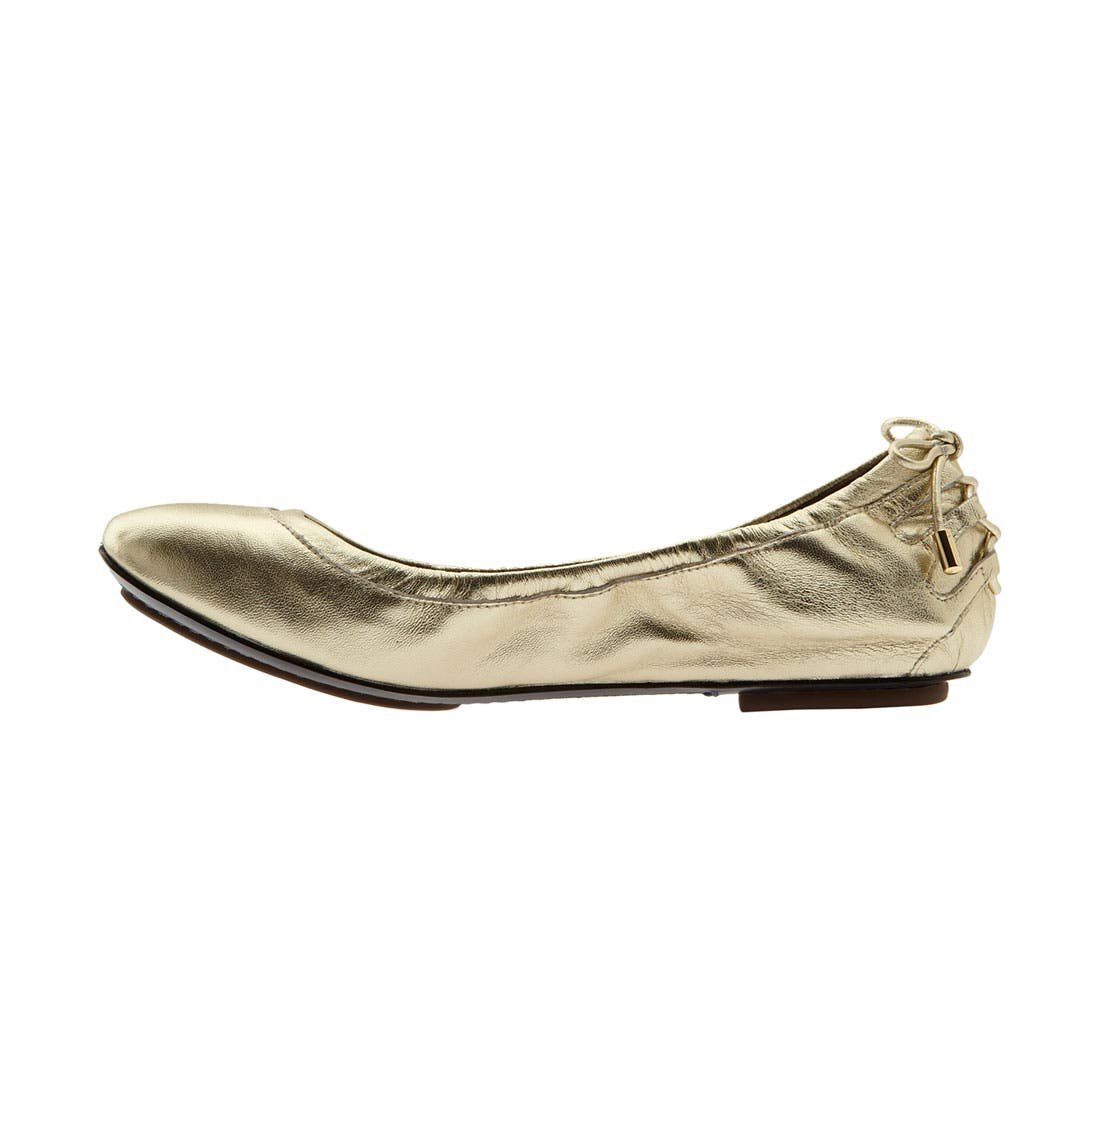 ,                             Maria Sharapova by Cole Haan 'Air Bacara' Flat,                             Alternate thumbnail 96, color,                             710